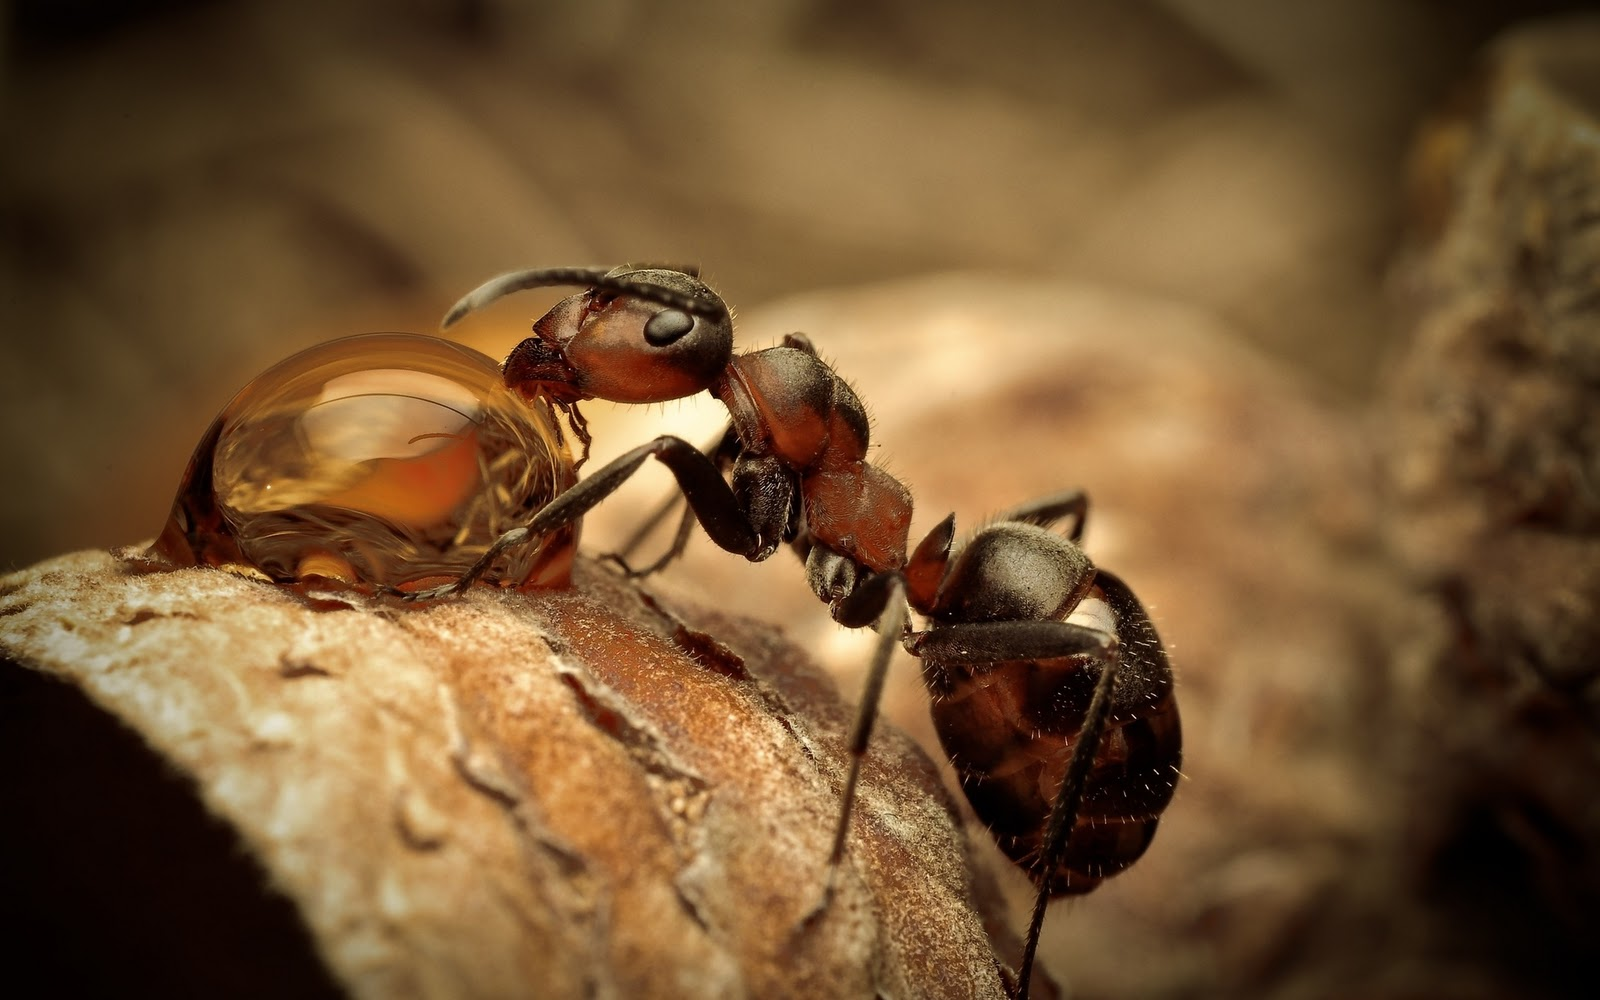 New Amazing Ant hd wallpaper Wallpaper